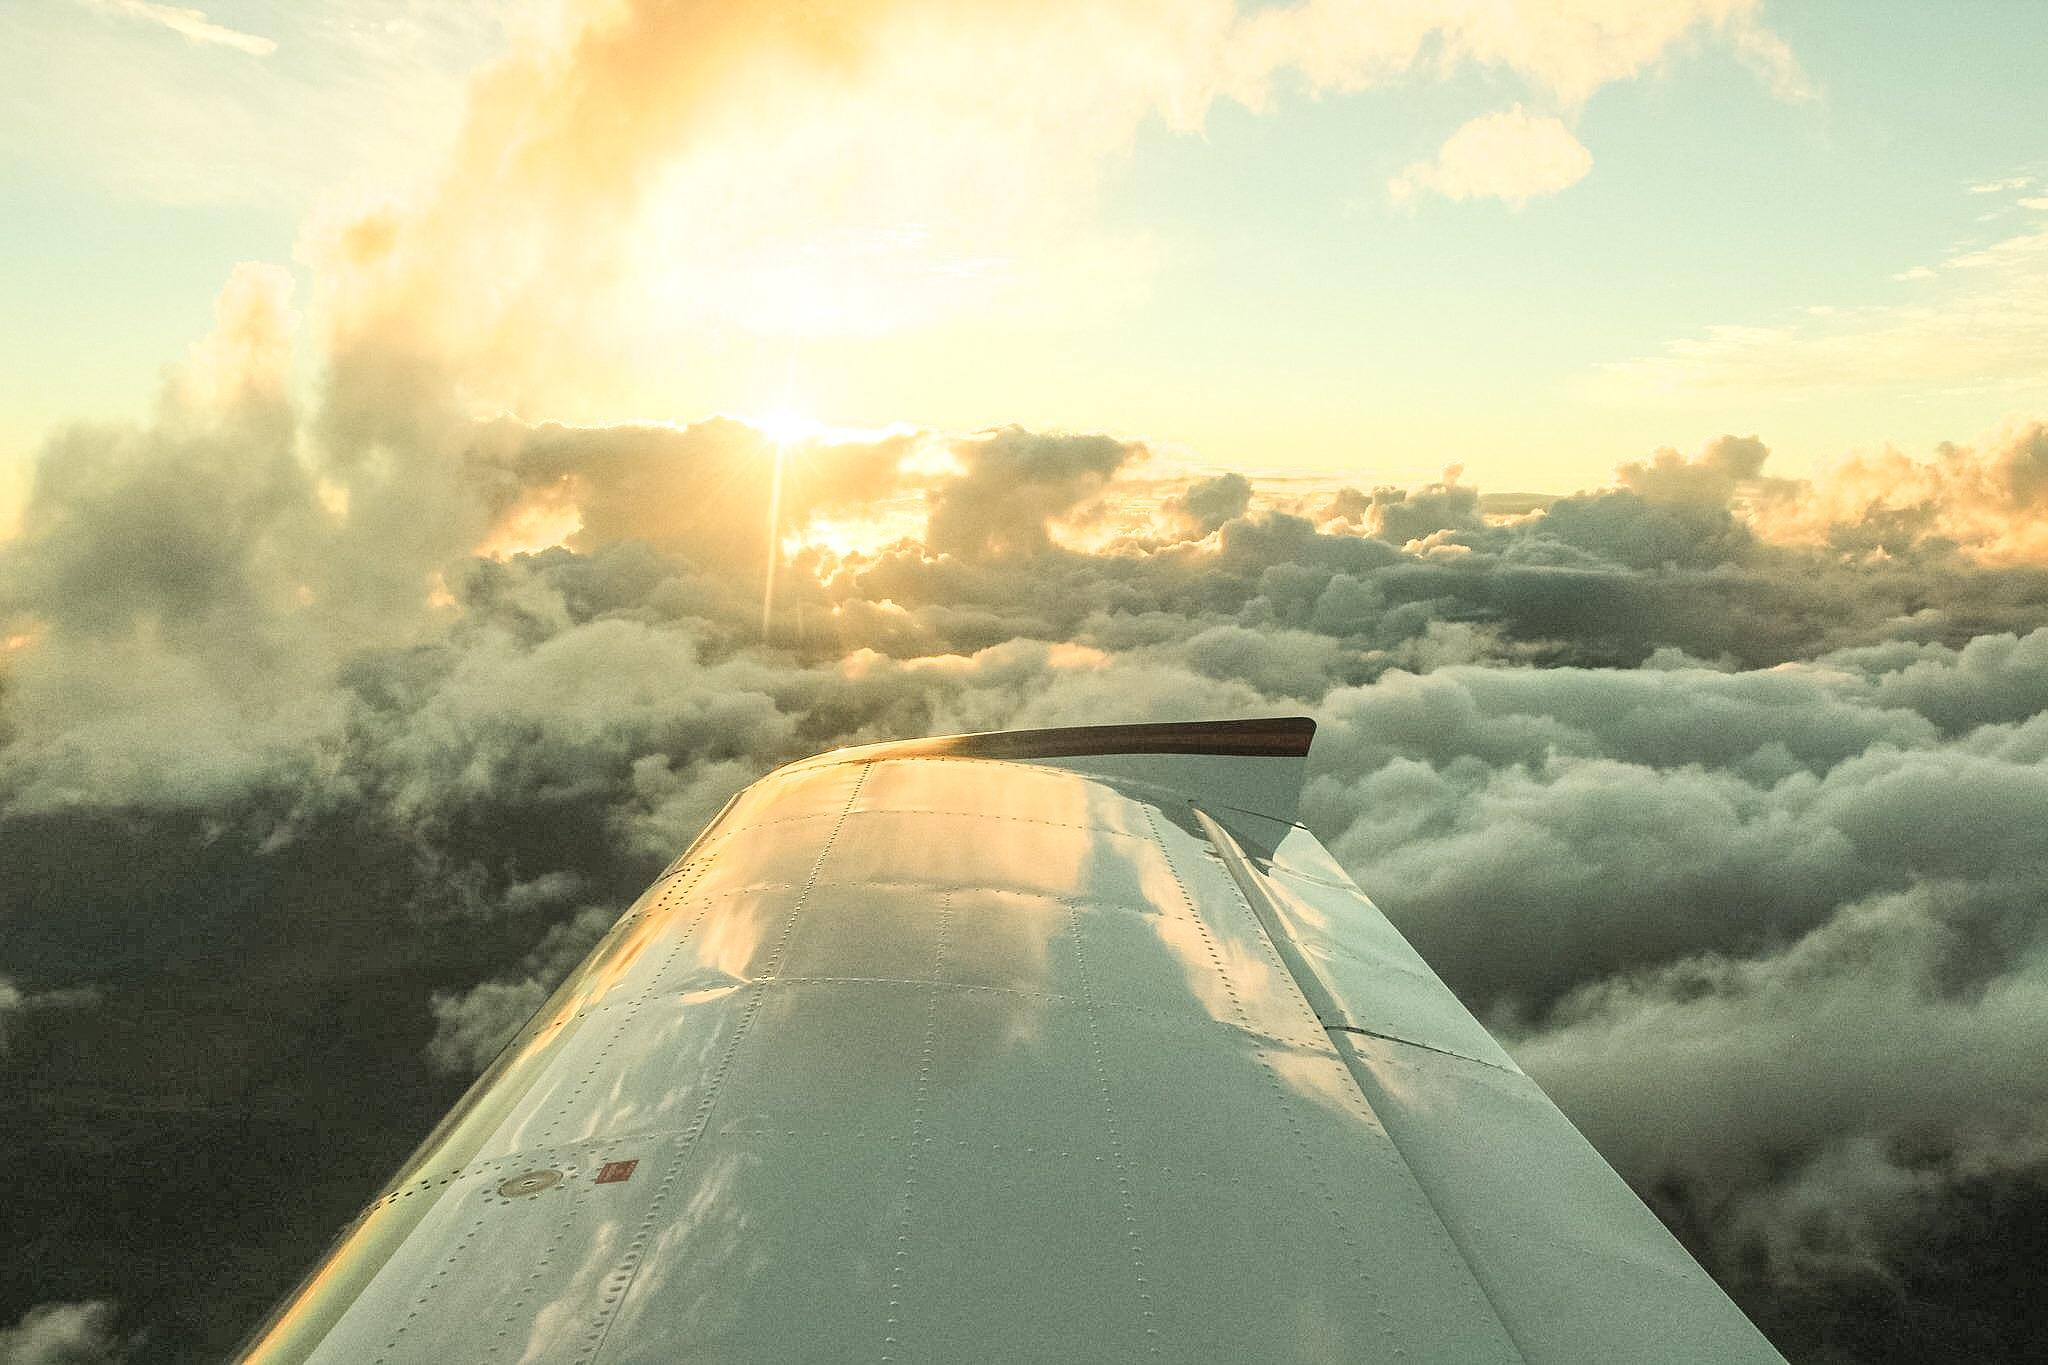 Flying amongst the clouds by ZeeBudgie